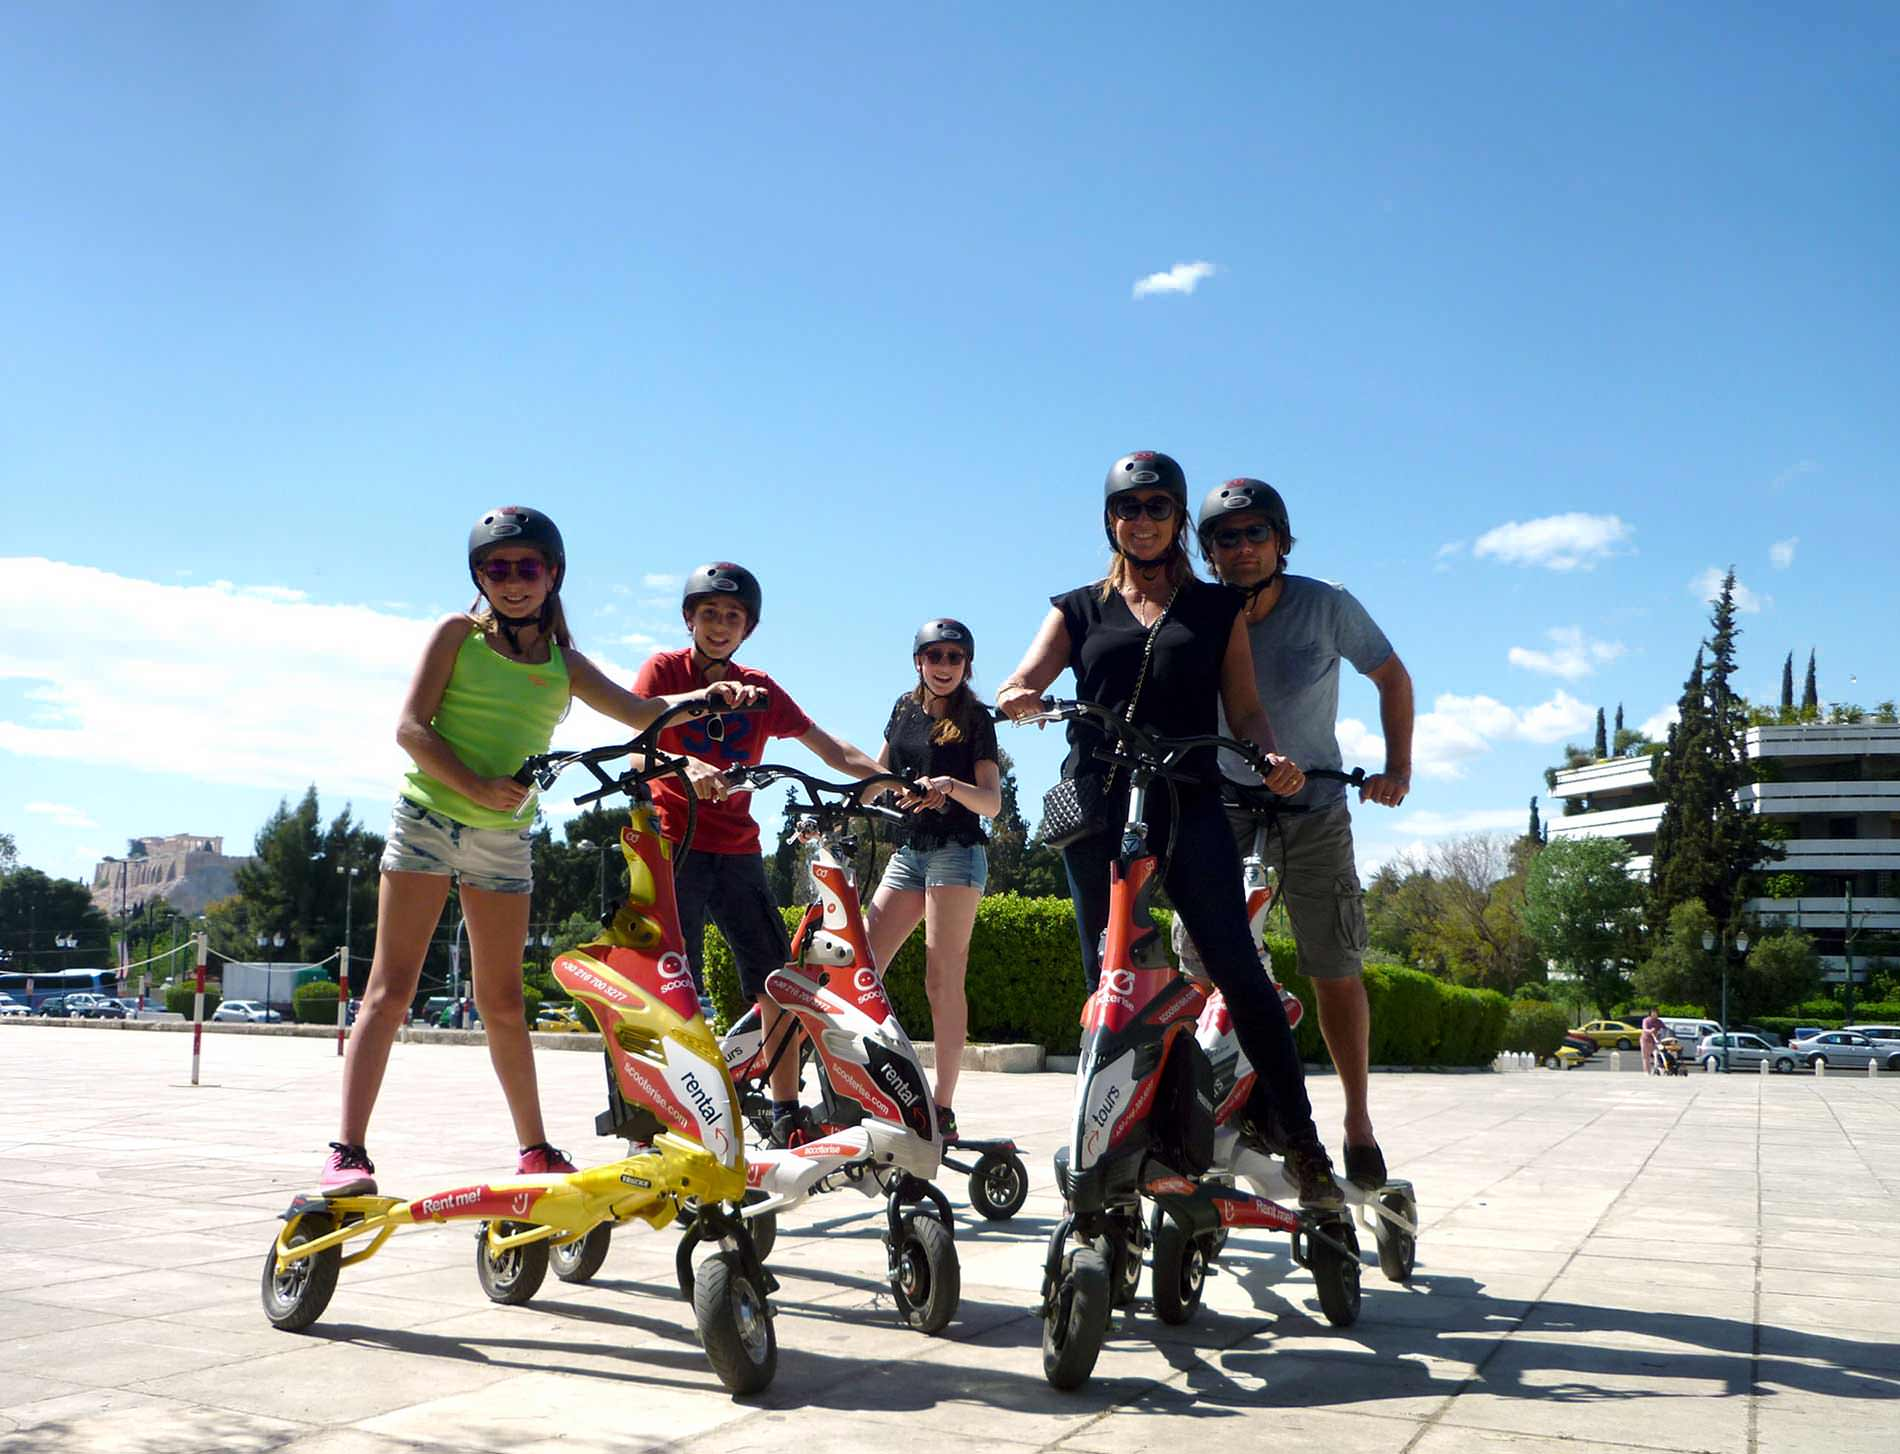 scooterise-family-activities-1